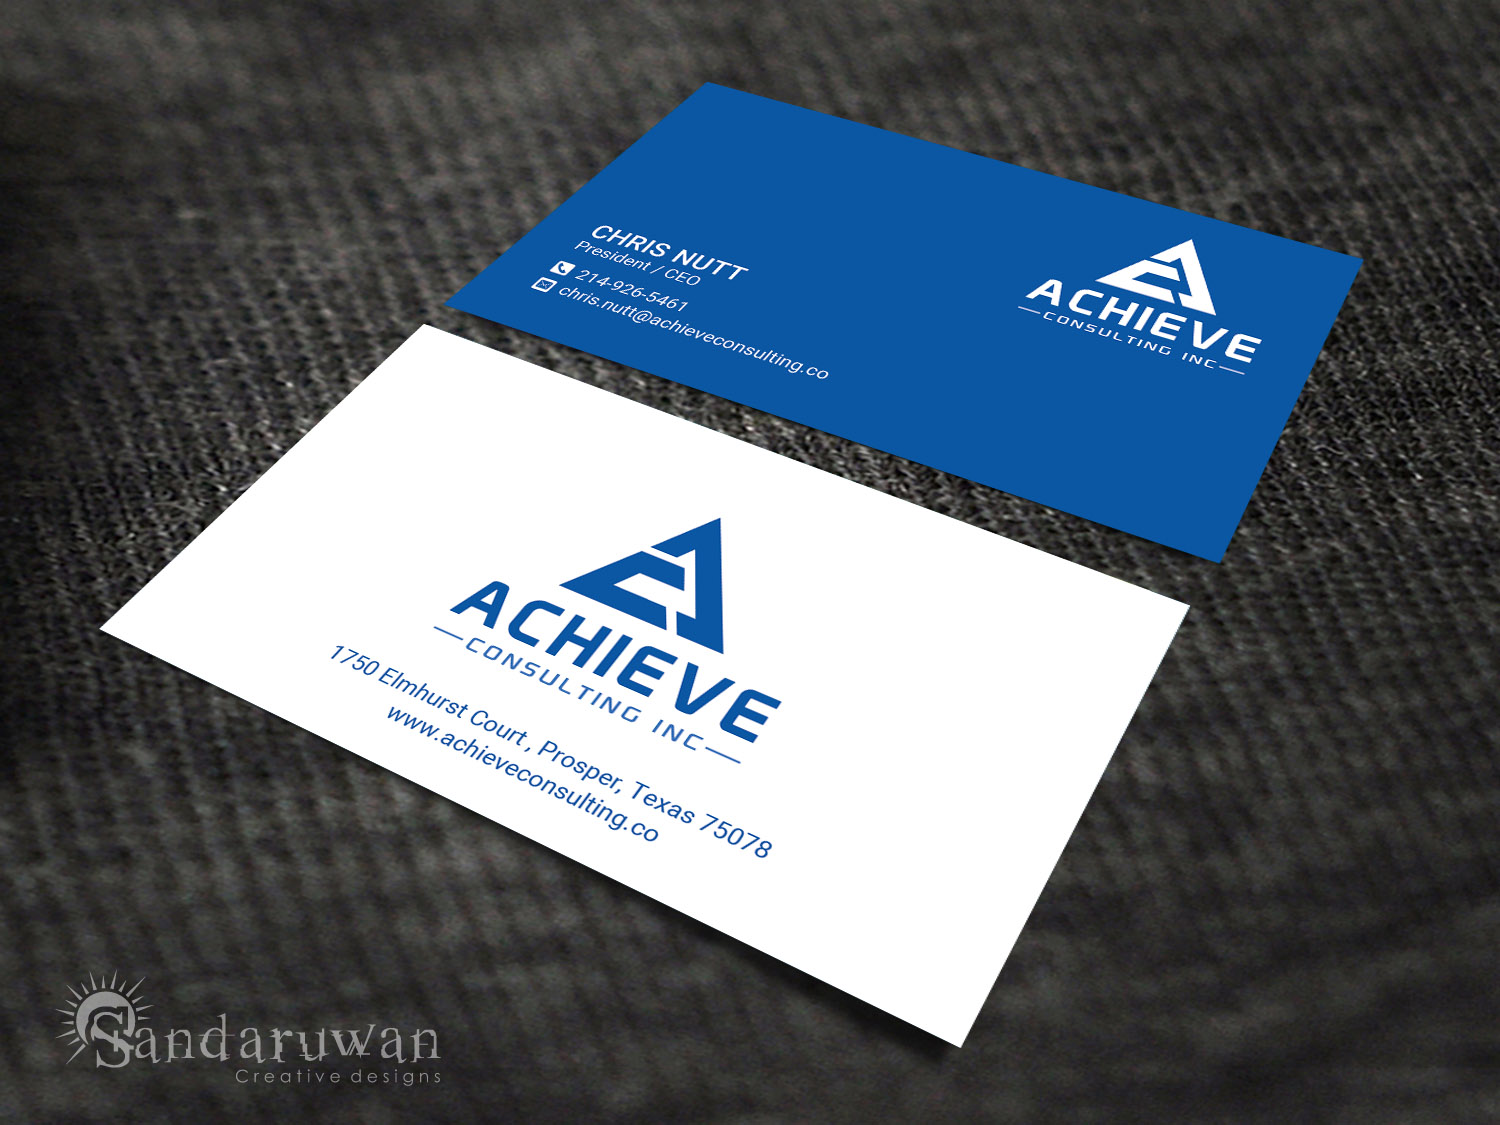 Professional masculine business card design for christopher nutt by business card design by sandaruwan for achieve consulting inc enterprise resource planning all colourmoves Choice Image